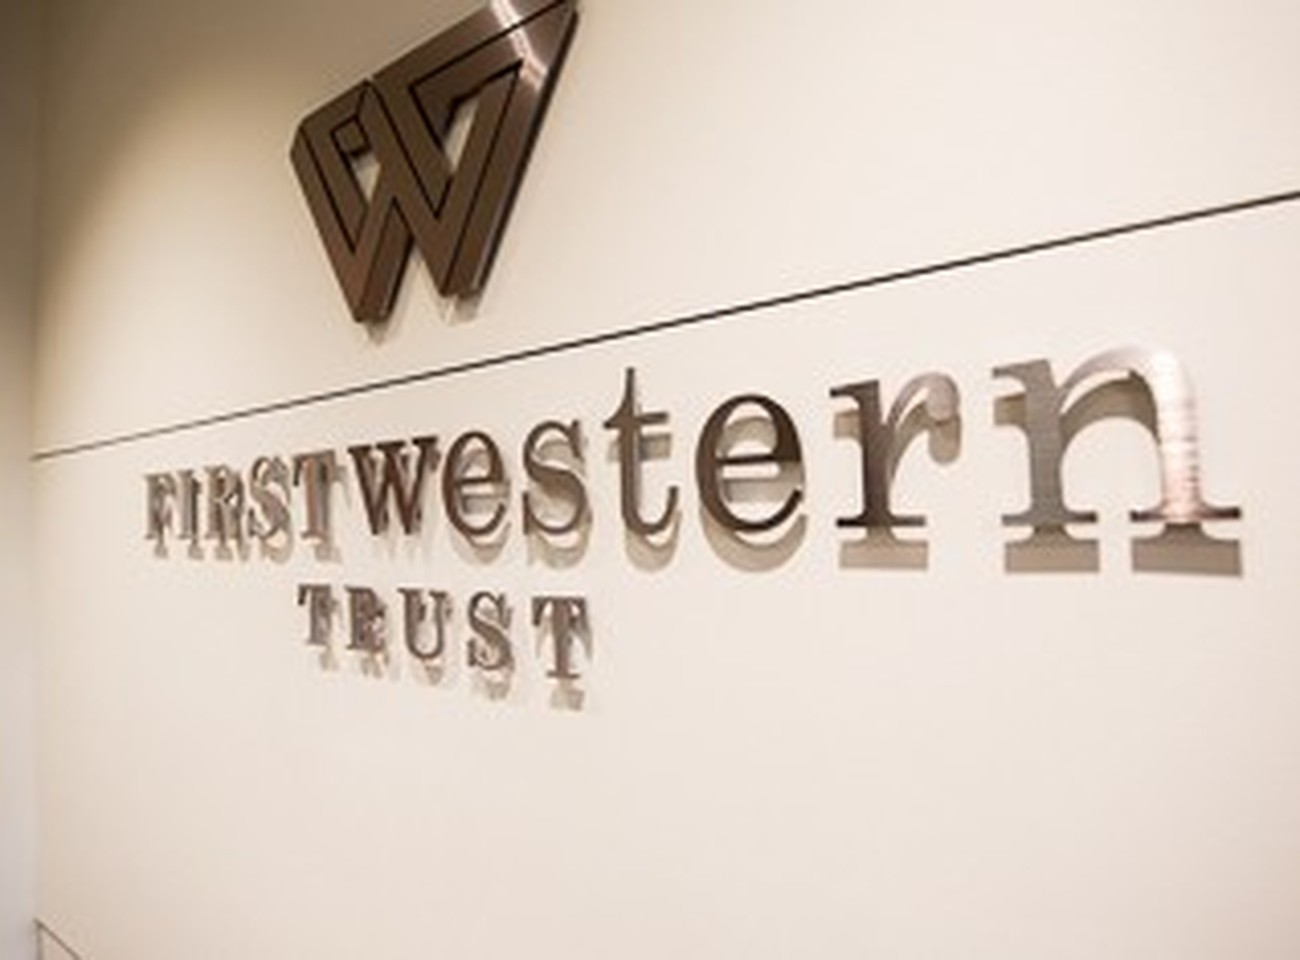 First Western Careers